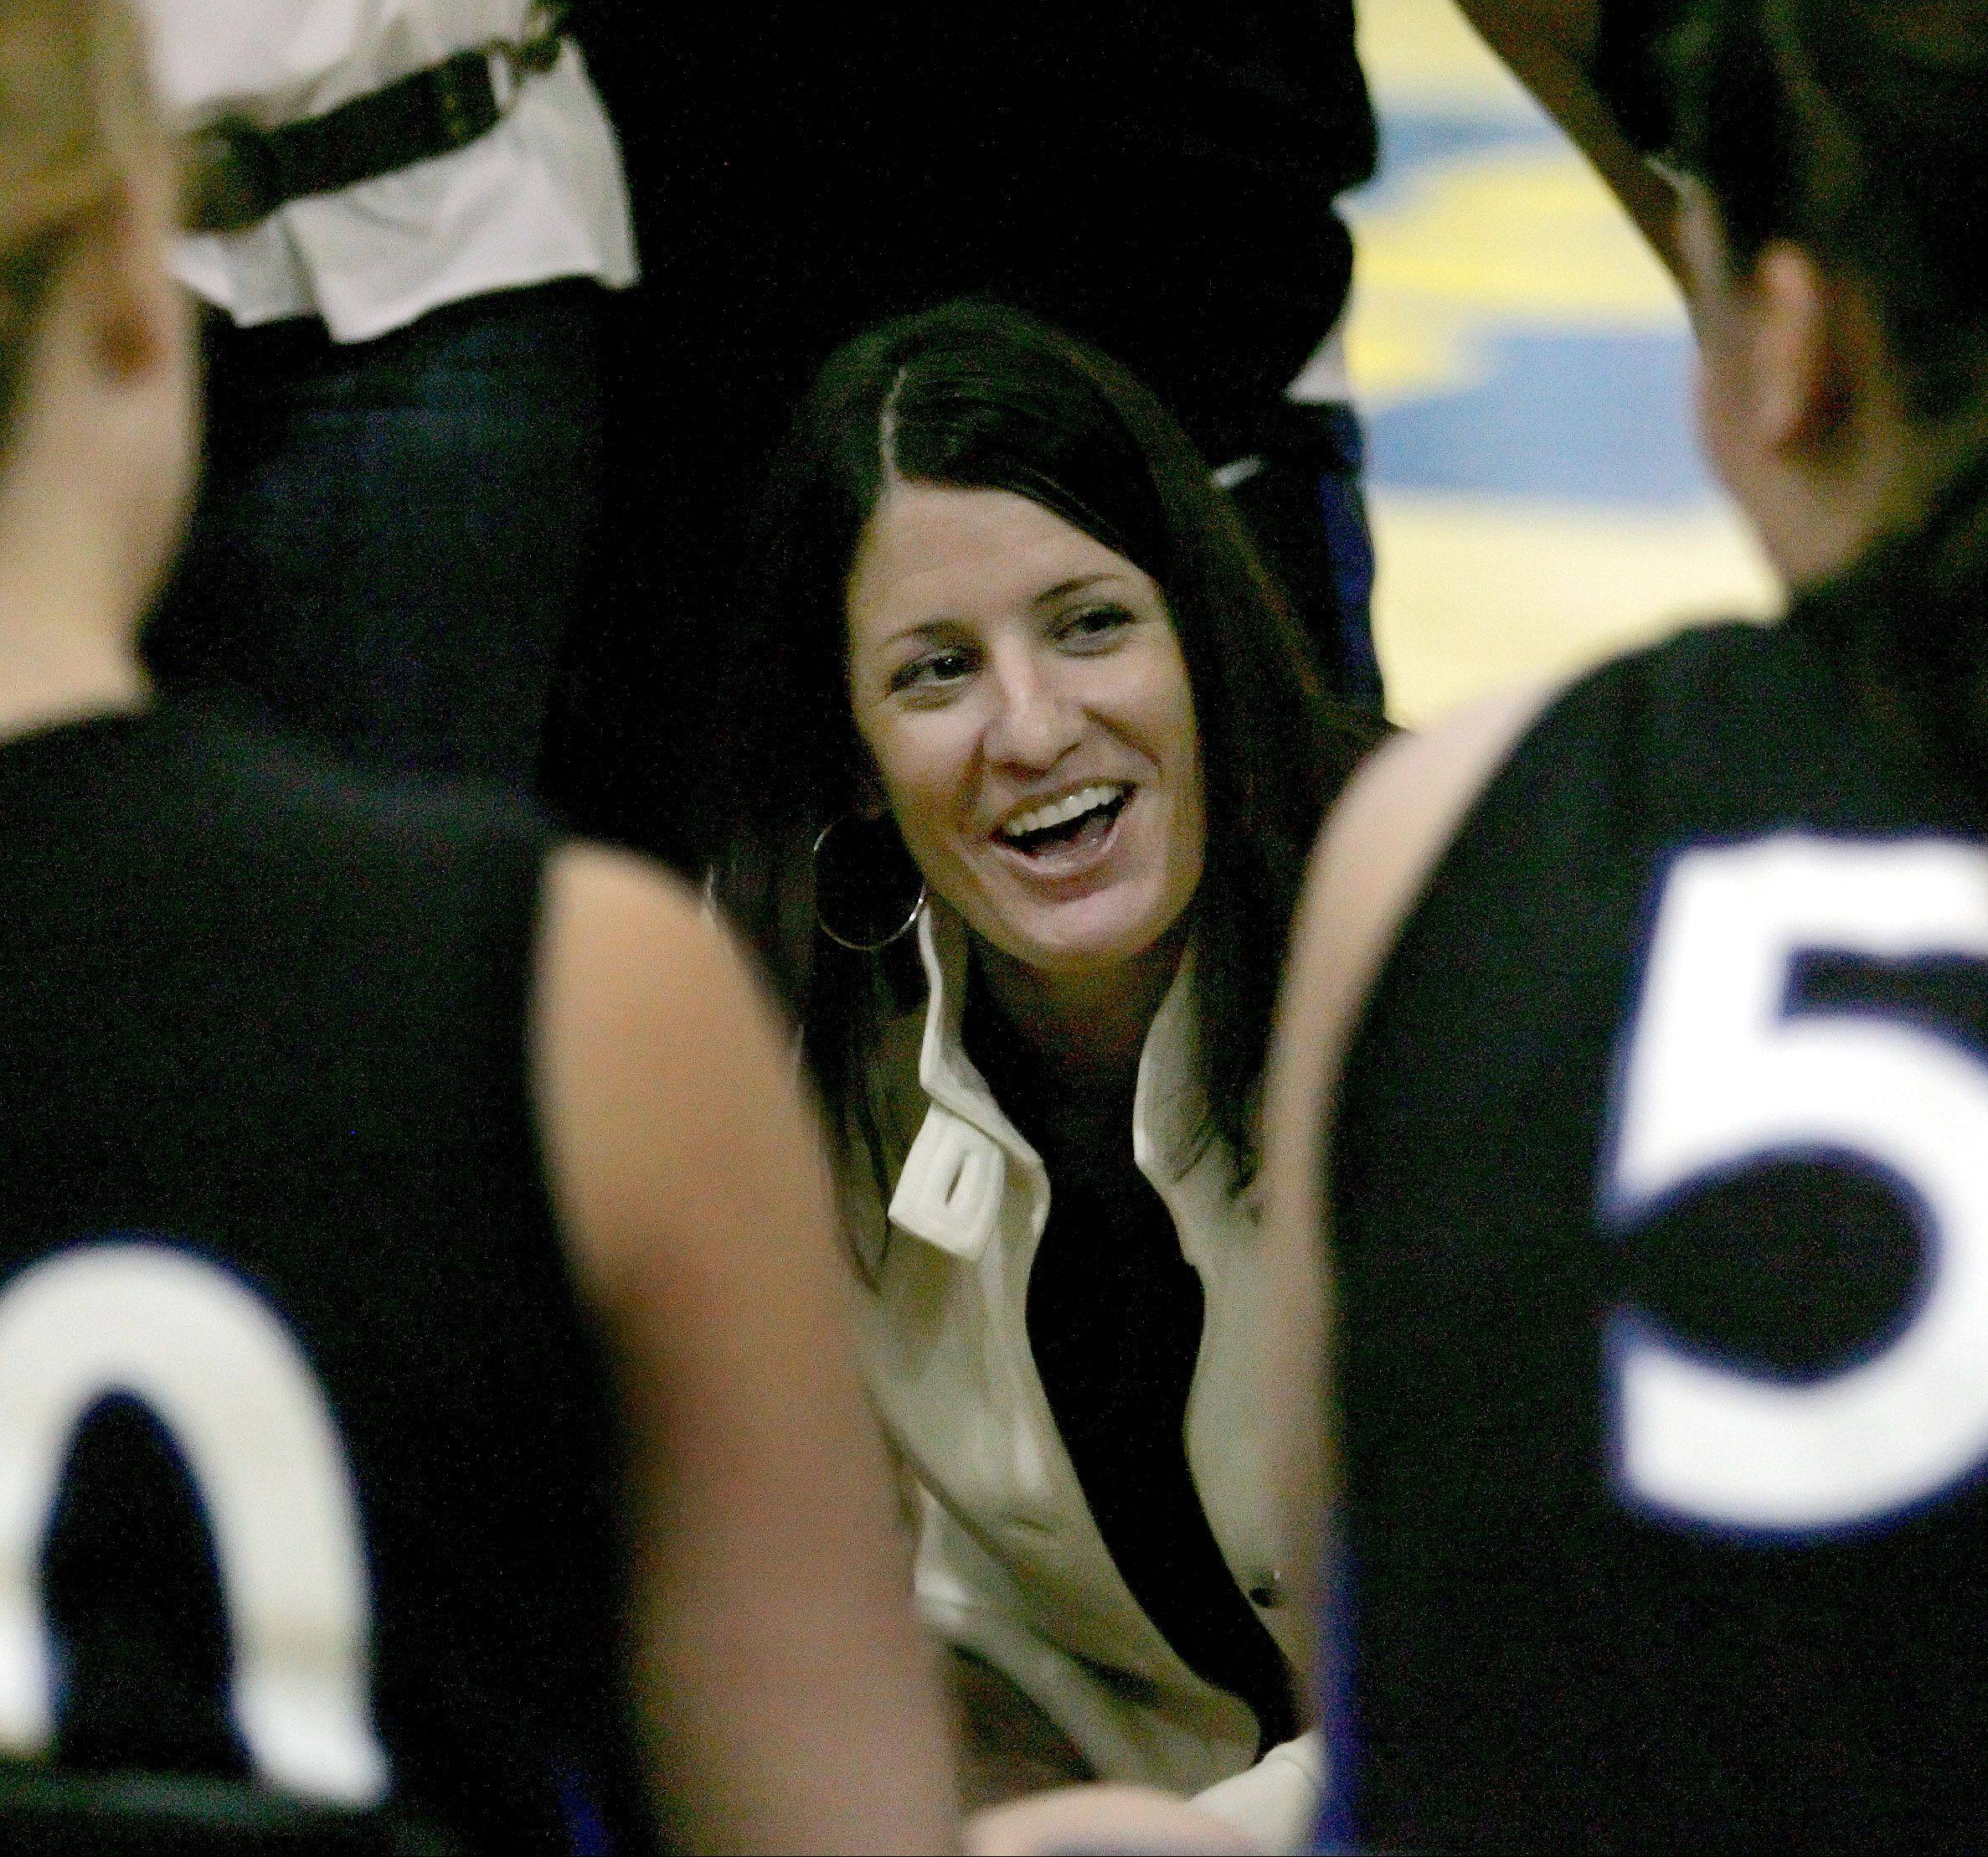 Colleen Backer said stepping down as St. Charles North girls basketball coach was an �unbelievably difficult decision.�